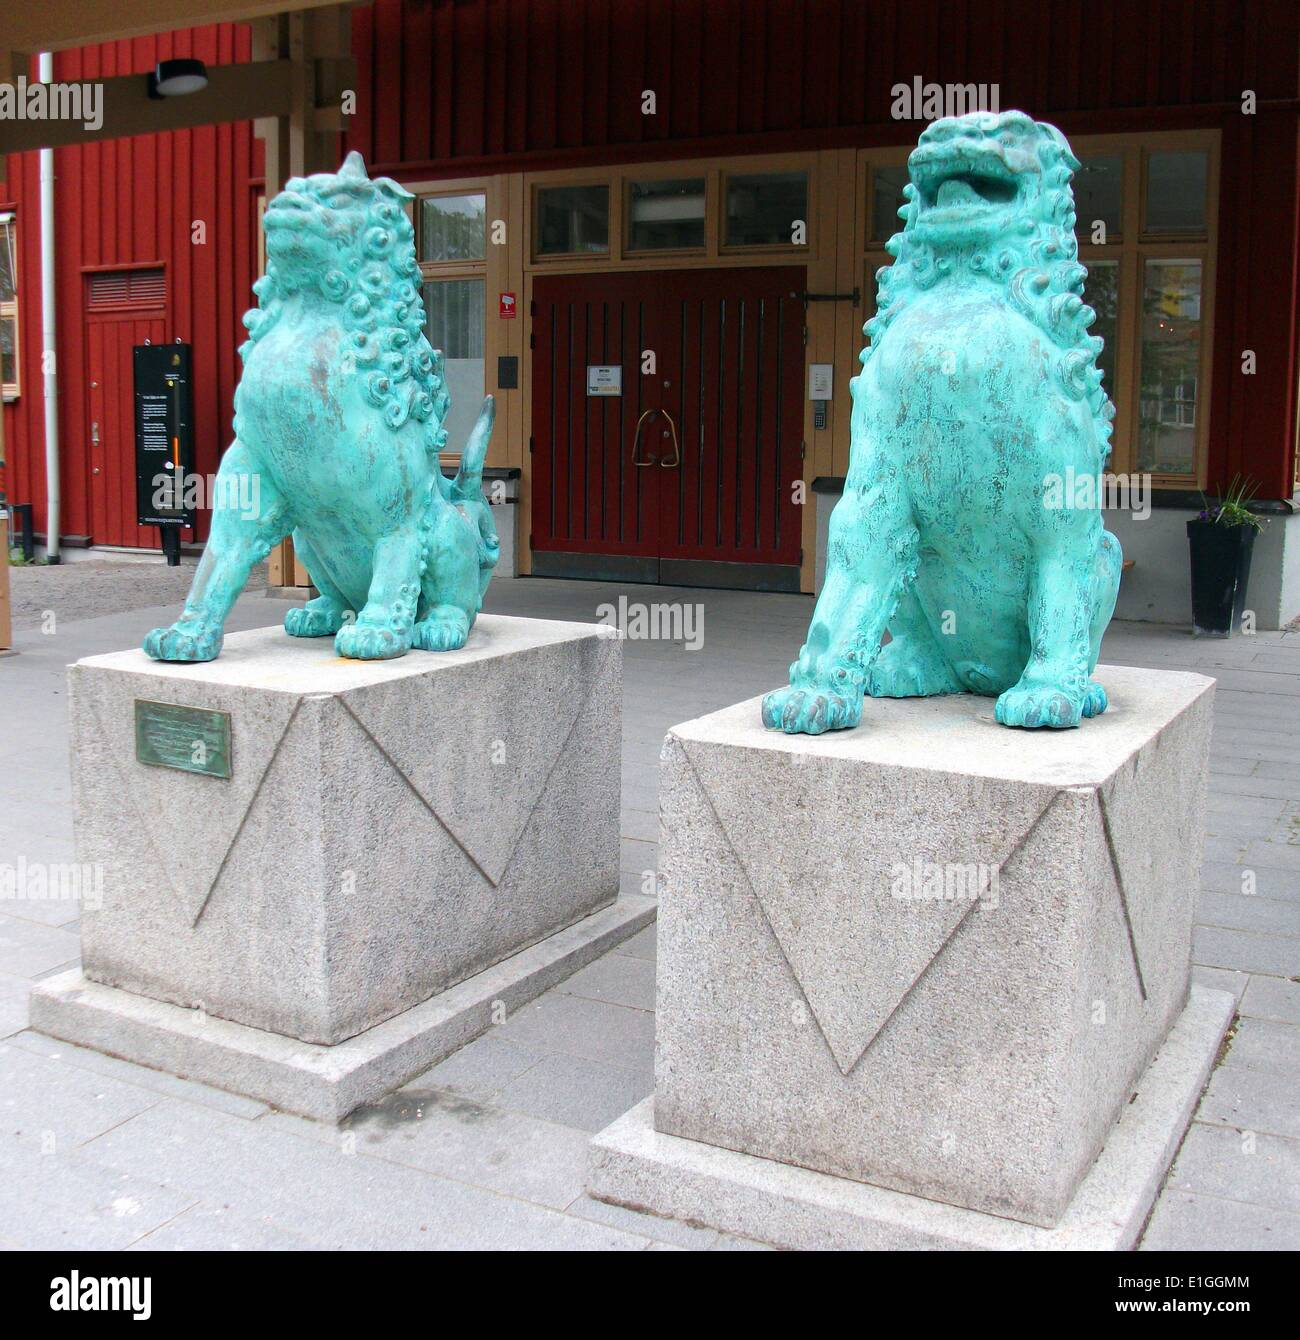 Guardian blue glazed lions from japan gifted to the city of Stockholm, sweden 1938 - Stock Image